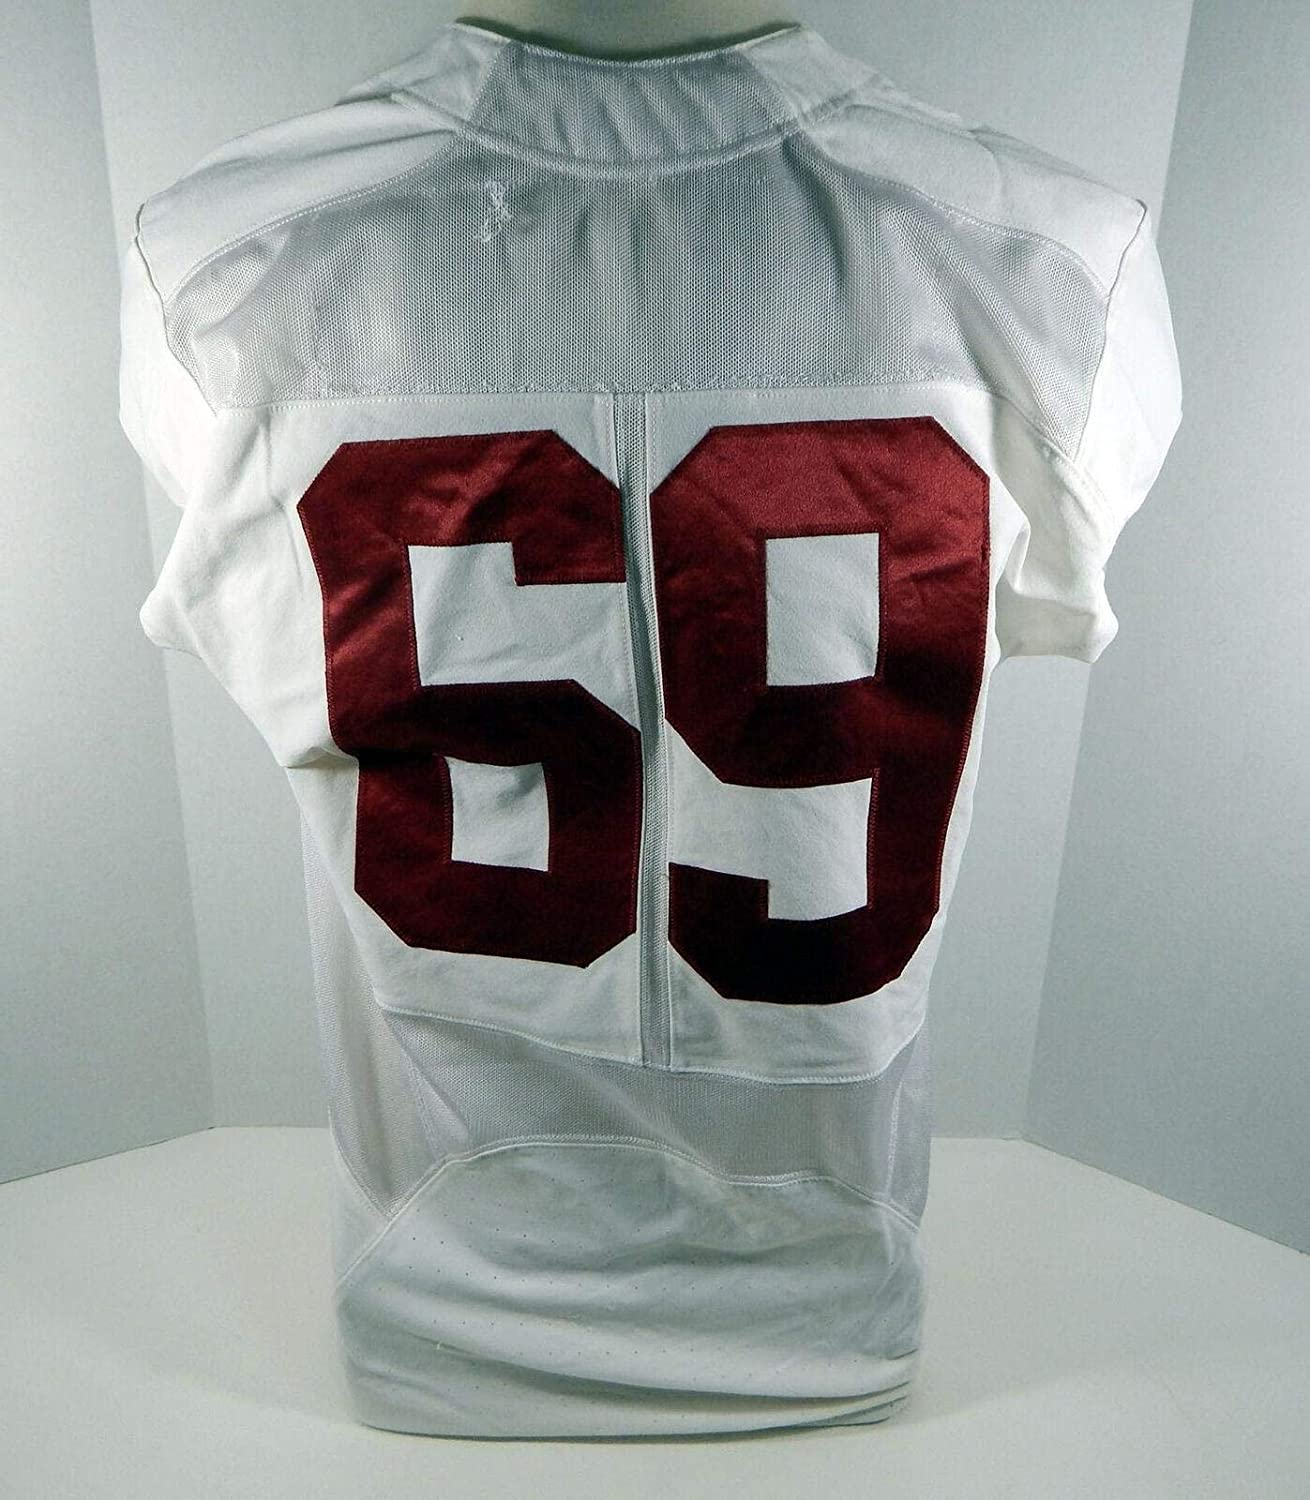 2016-18 Alabama Crimson Tide #69 Game Used White Jersey BAMA00098 - College Game Used